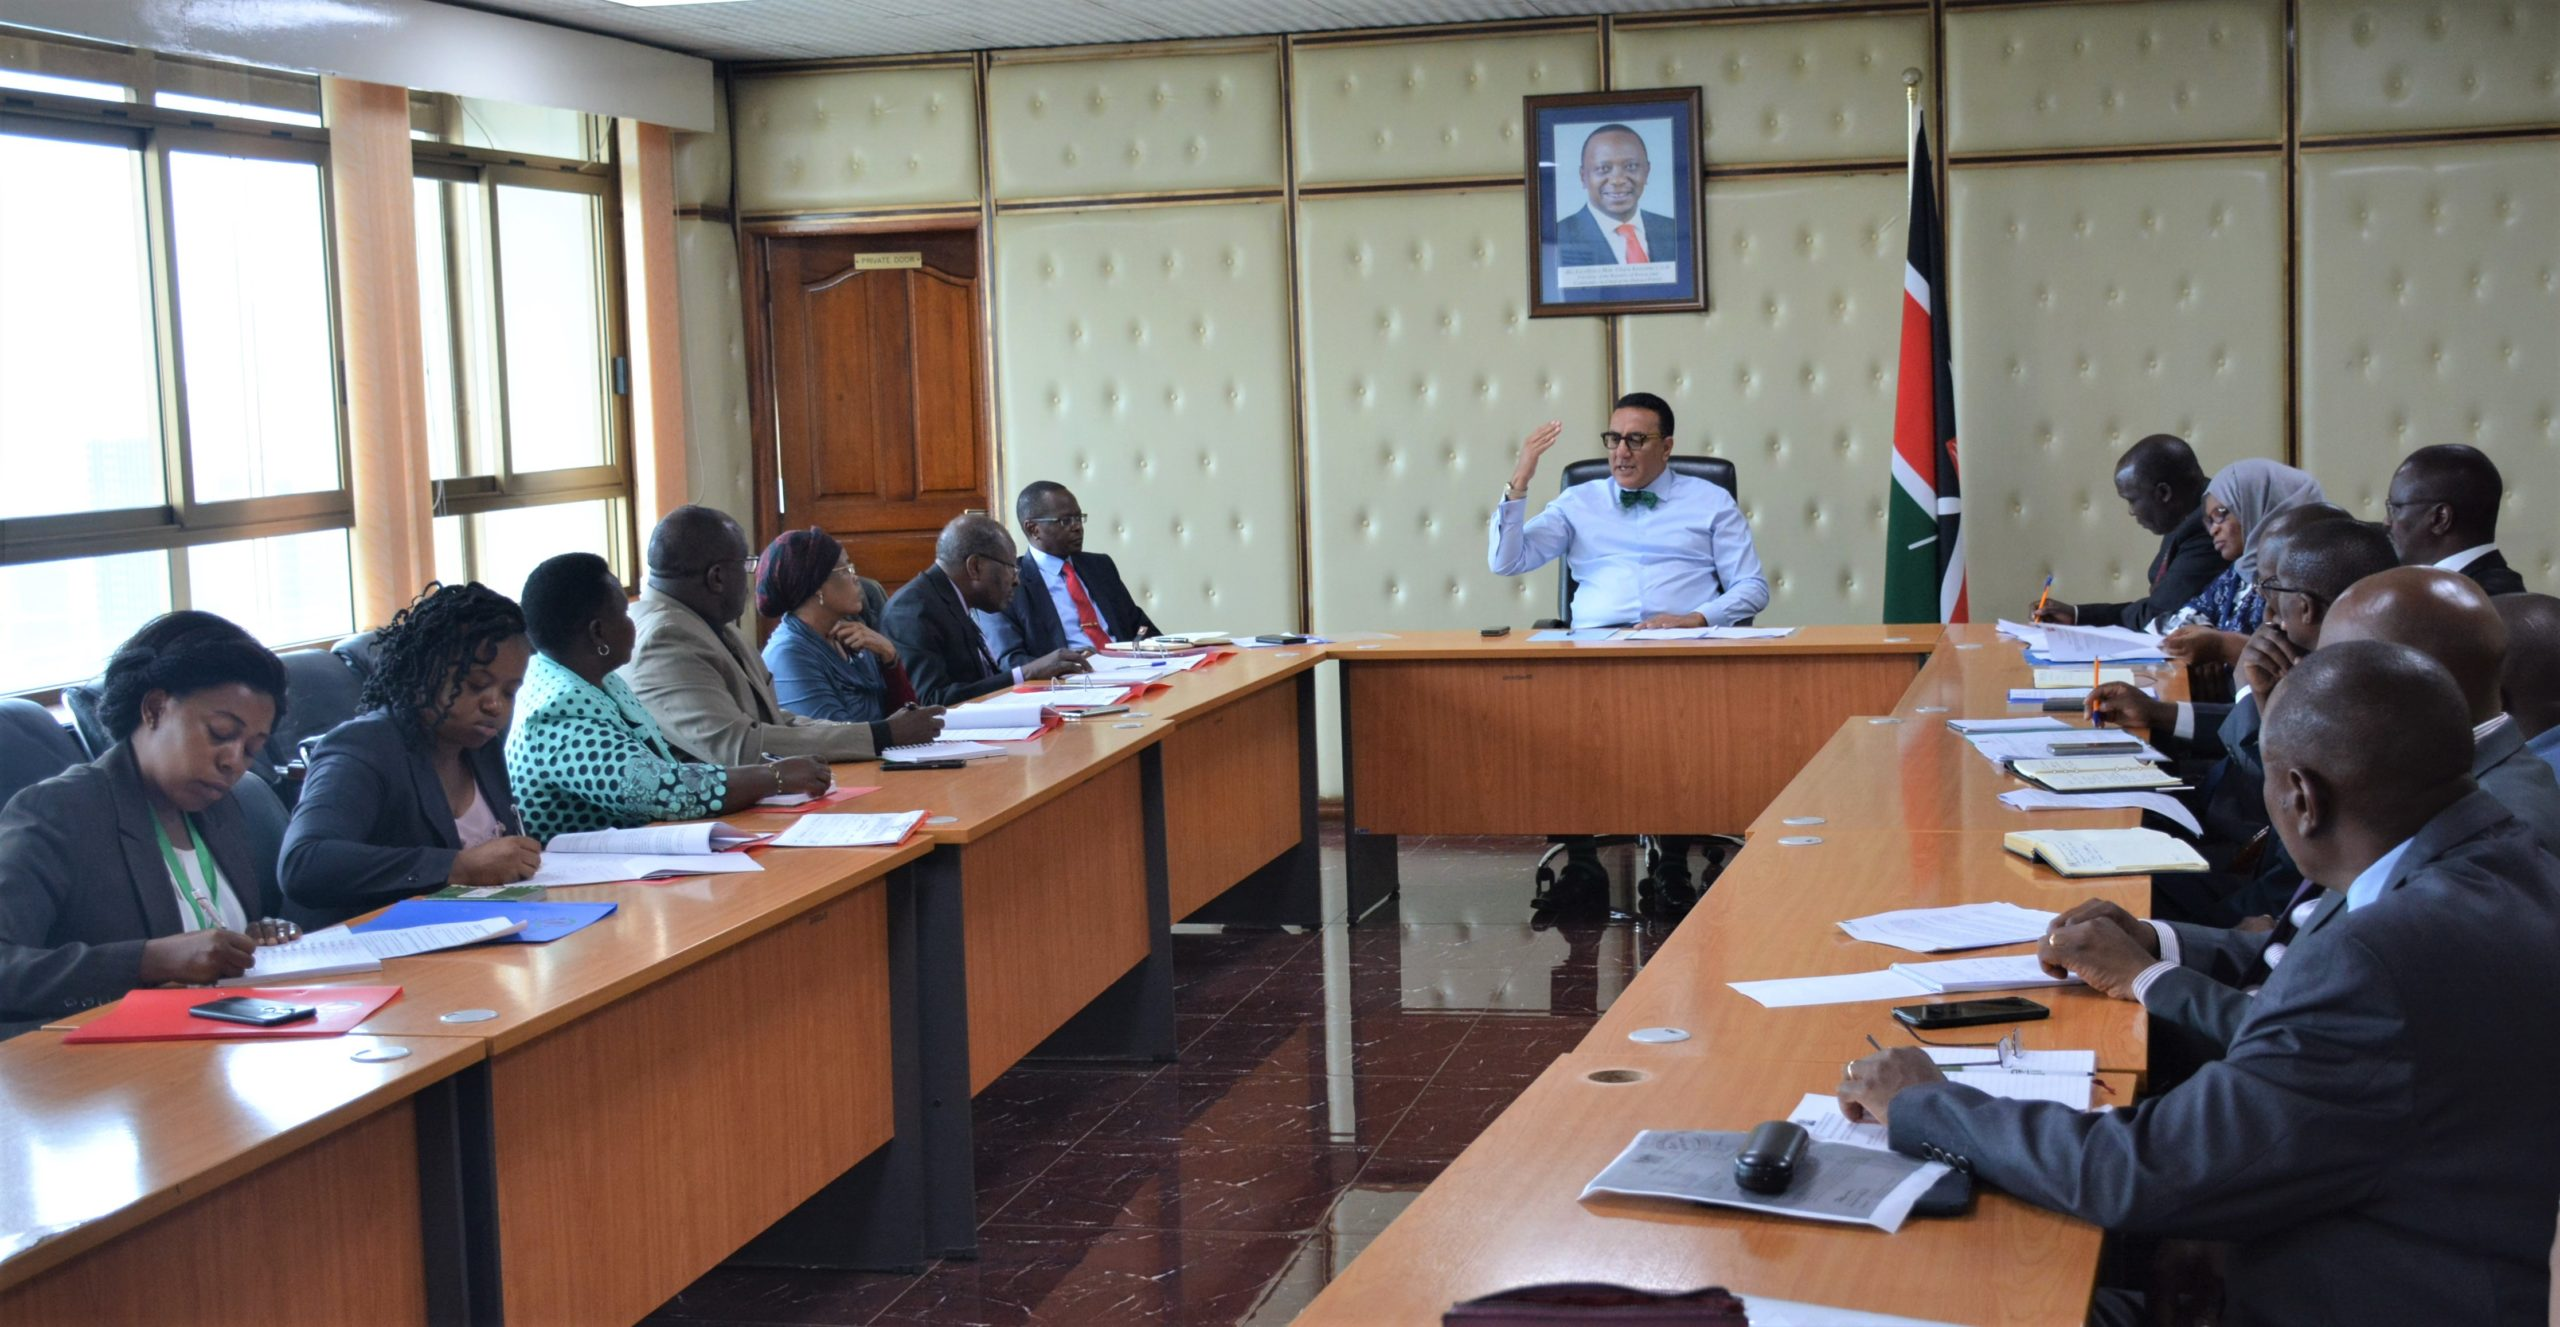 Consultative meeting with Ministry Of Tourism And Wildlife on the intergovernmental dispute between the County Government Of Taita Taveta and Kenya Wildlife Services held On 26th February 2020 at the Cabinet Secretary boardroom.